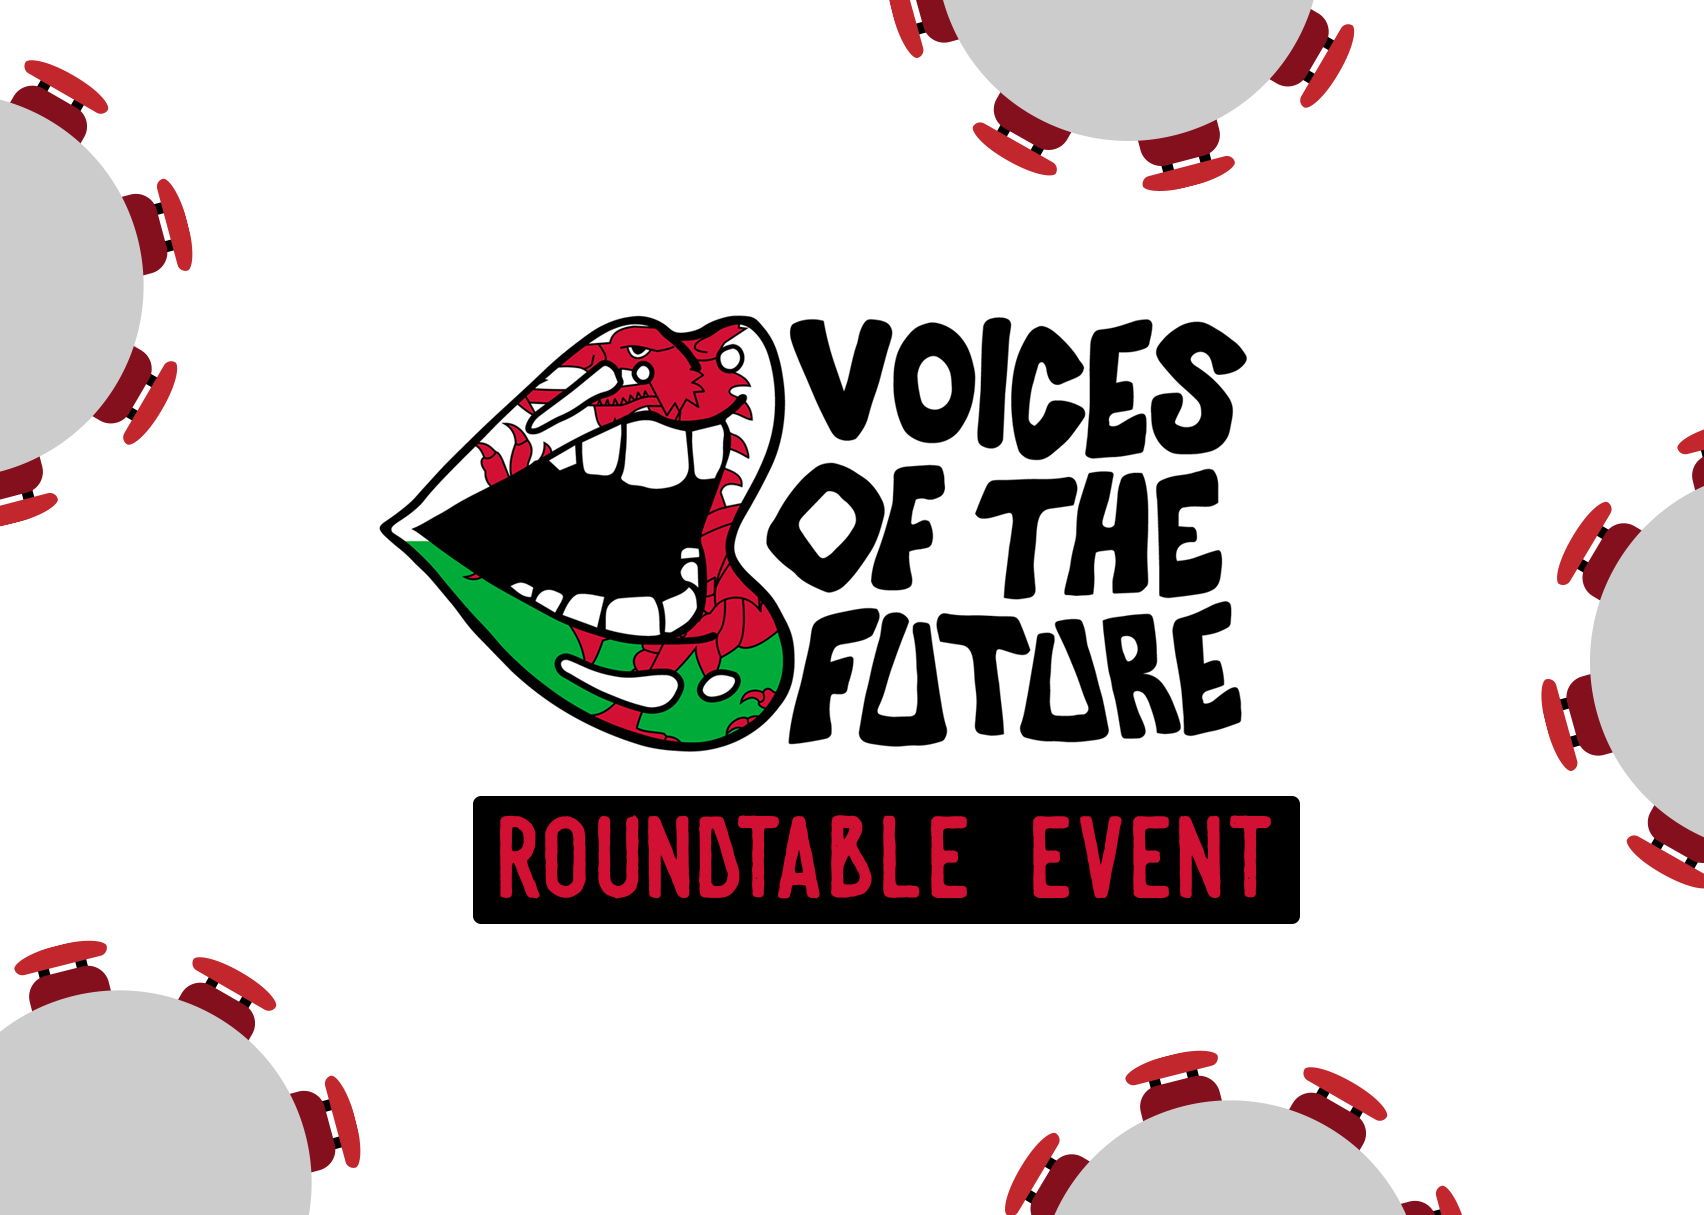 Voices of the Future Roundtable Event